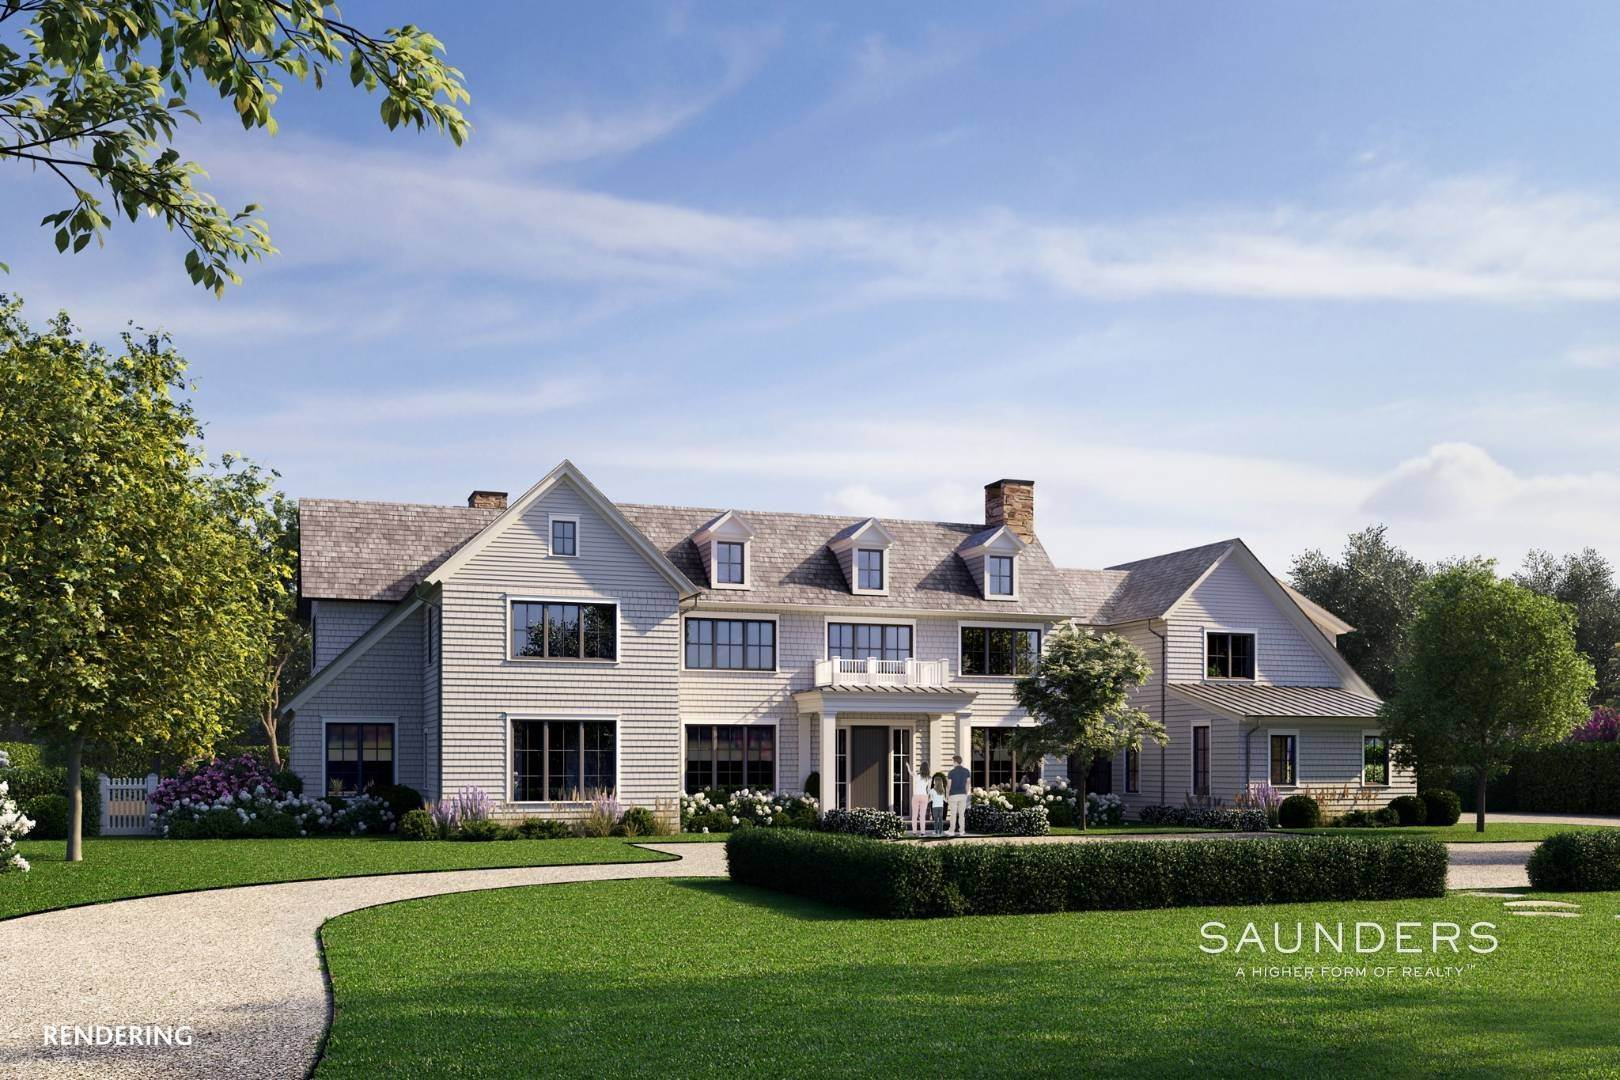 Single Family Homes for Sale at Spectacular And New Private Estate By Michael Davis 102 Highland Terrace, Bridgehampton, Southampton Town, NY 11968